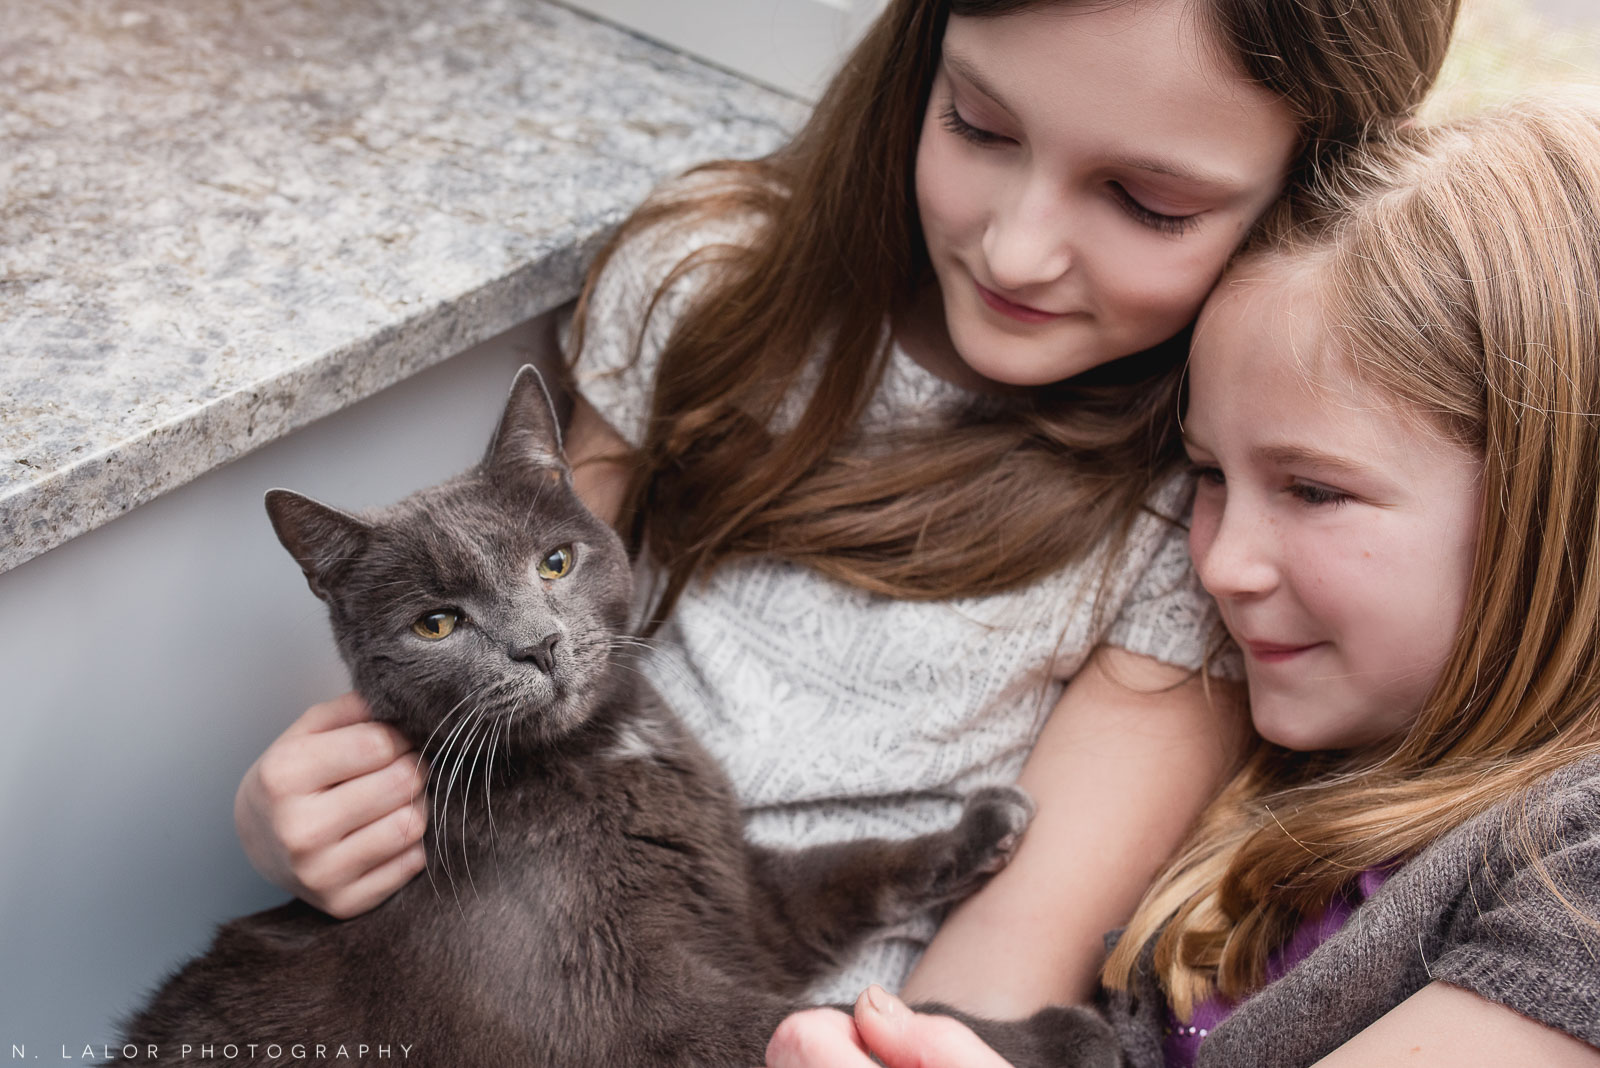 The family cat getting some love. Editorial-style family session by N. Lalor Photography. Darien, CT.